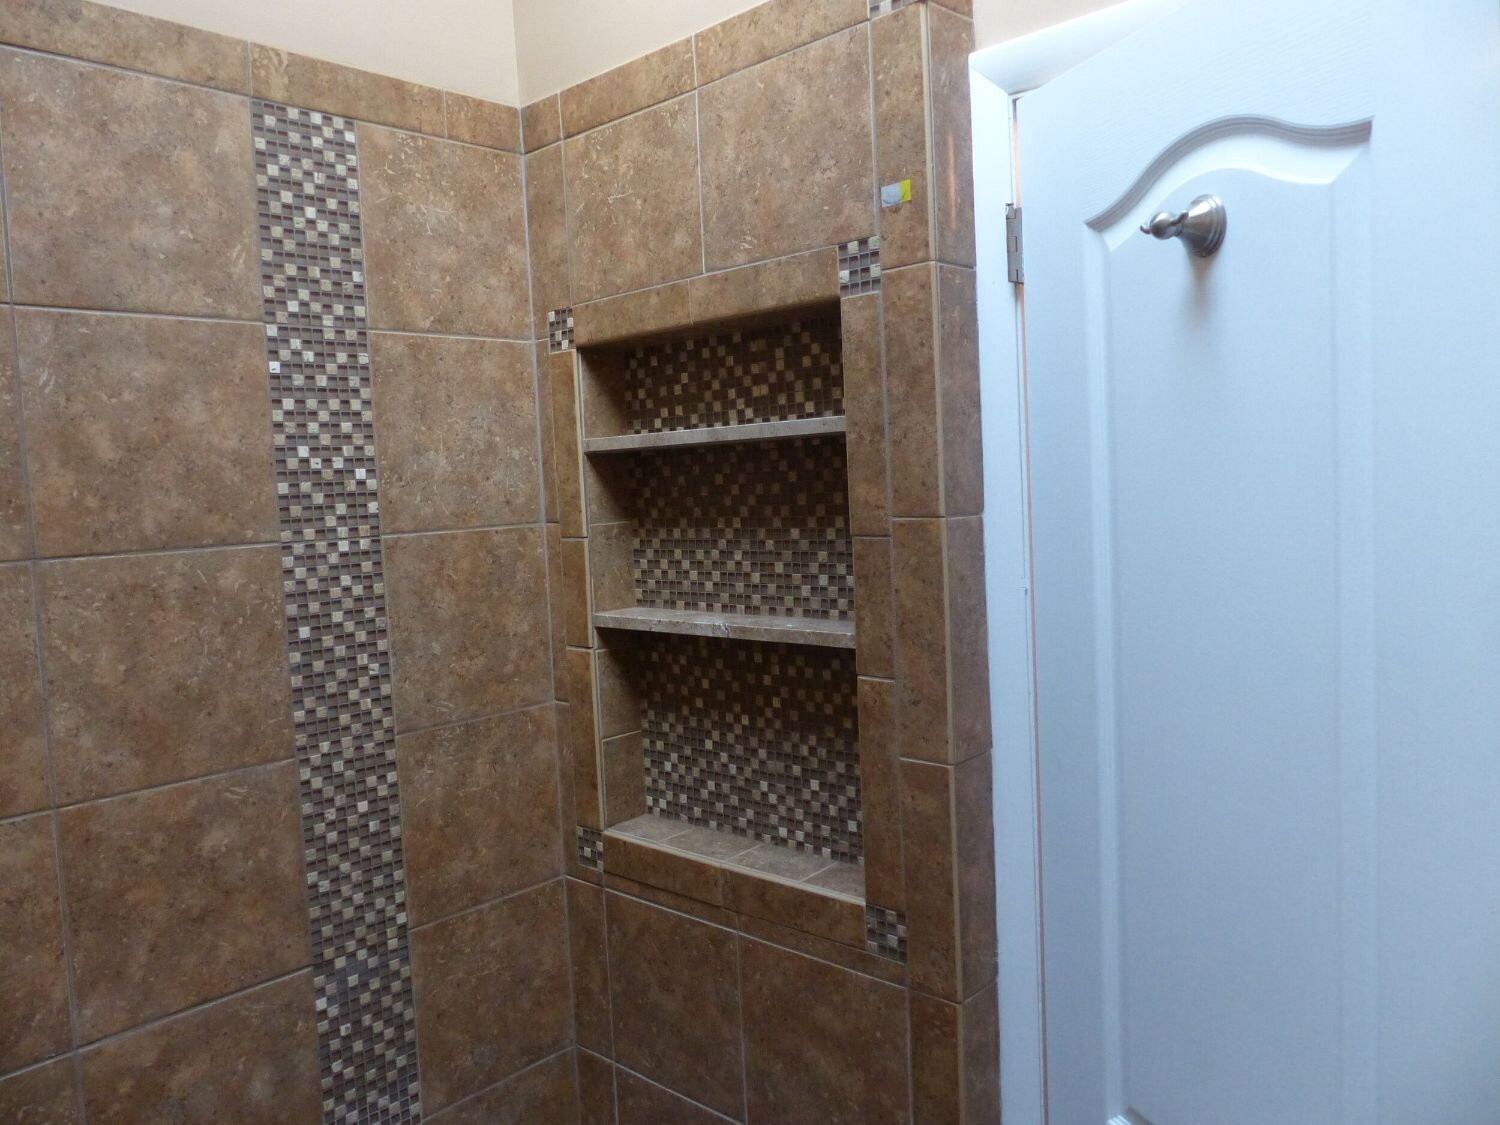 An inset shelf can add additional space for you to put your toiletries.